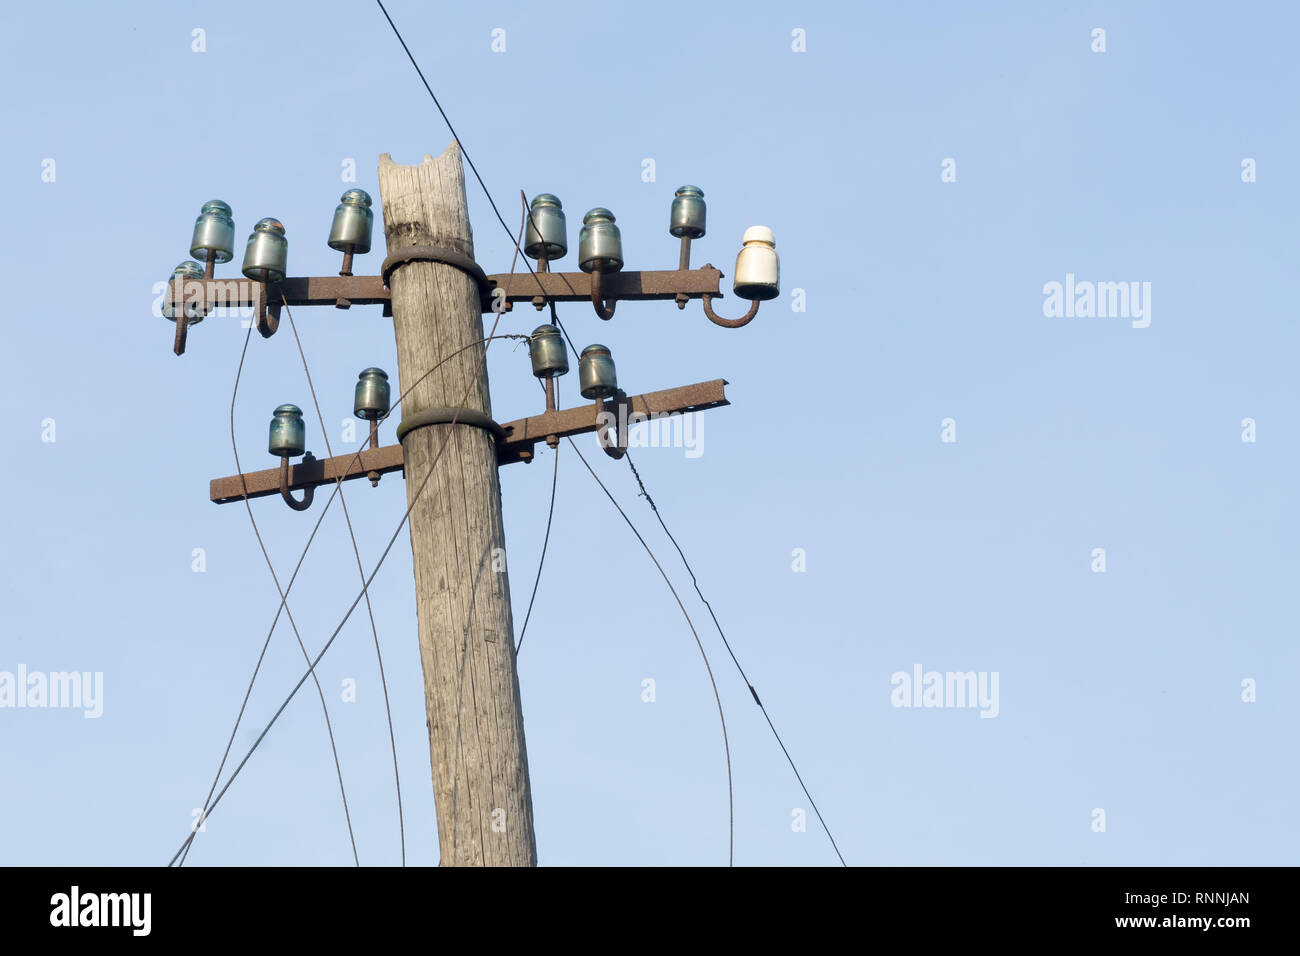 Old electric wooden pole with glass and ceramic insulators and